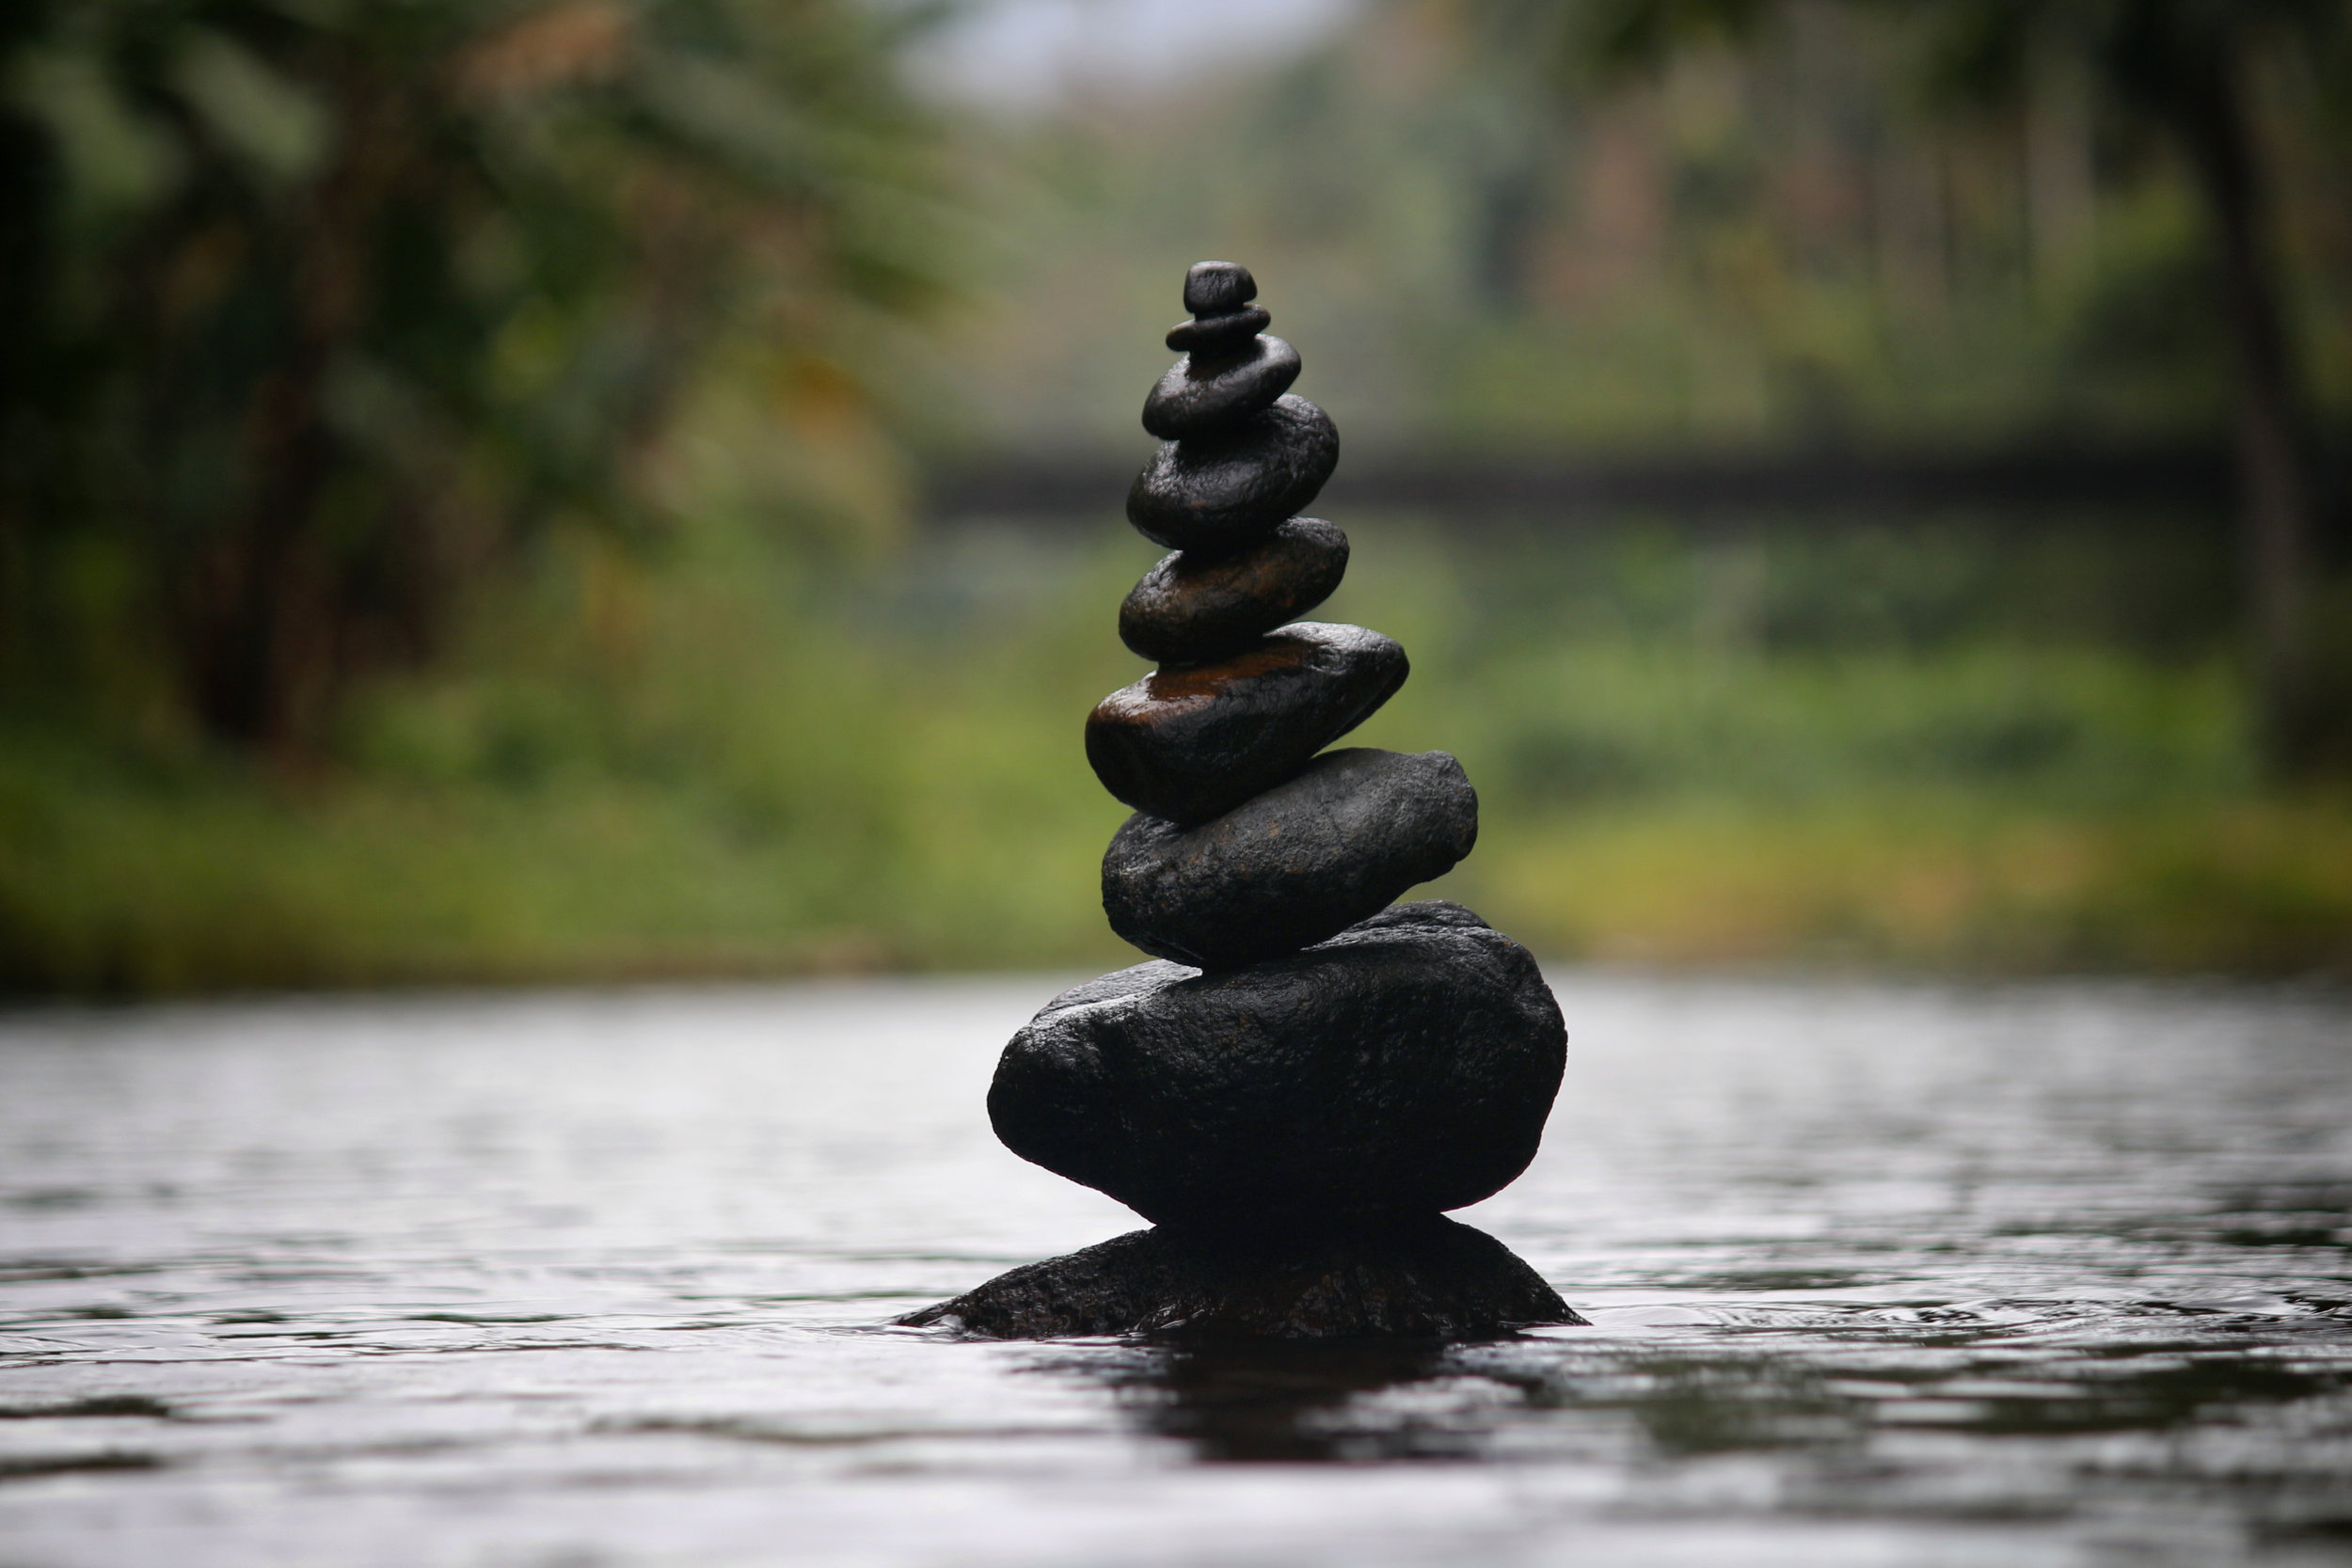 Balanced rocks in water - clearly you have reached the pinnacle of enlightenment if you sit near these bad boys.